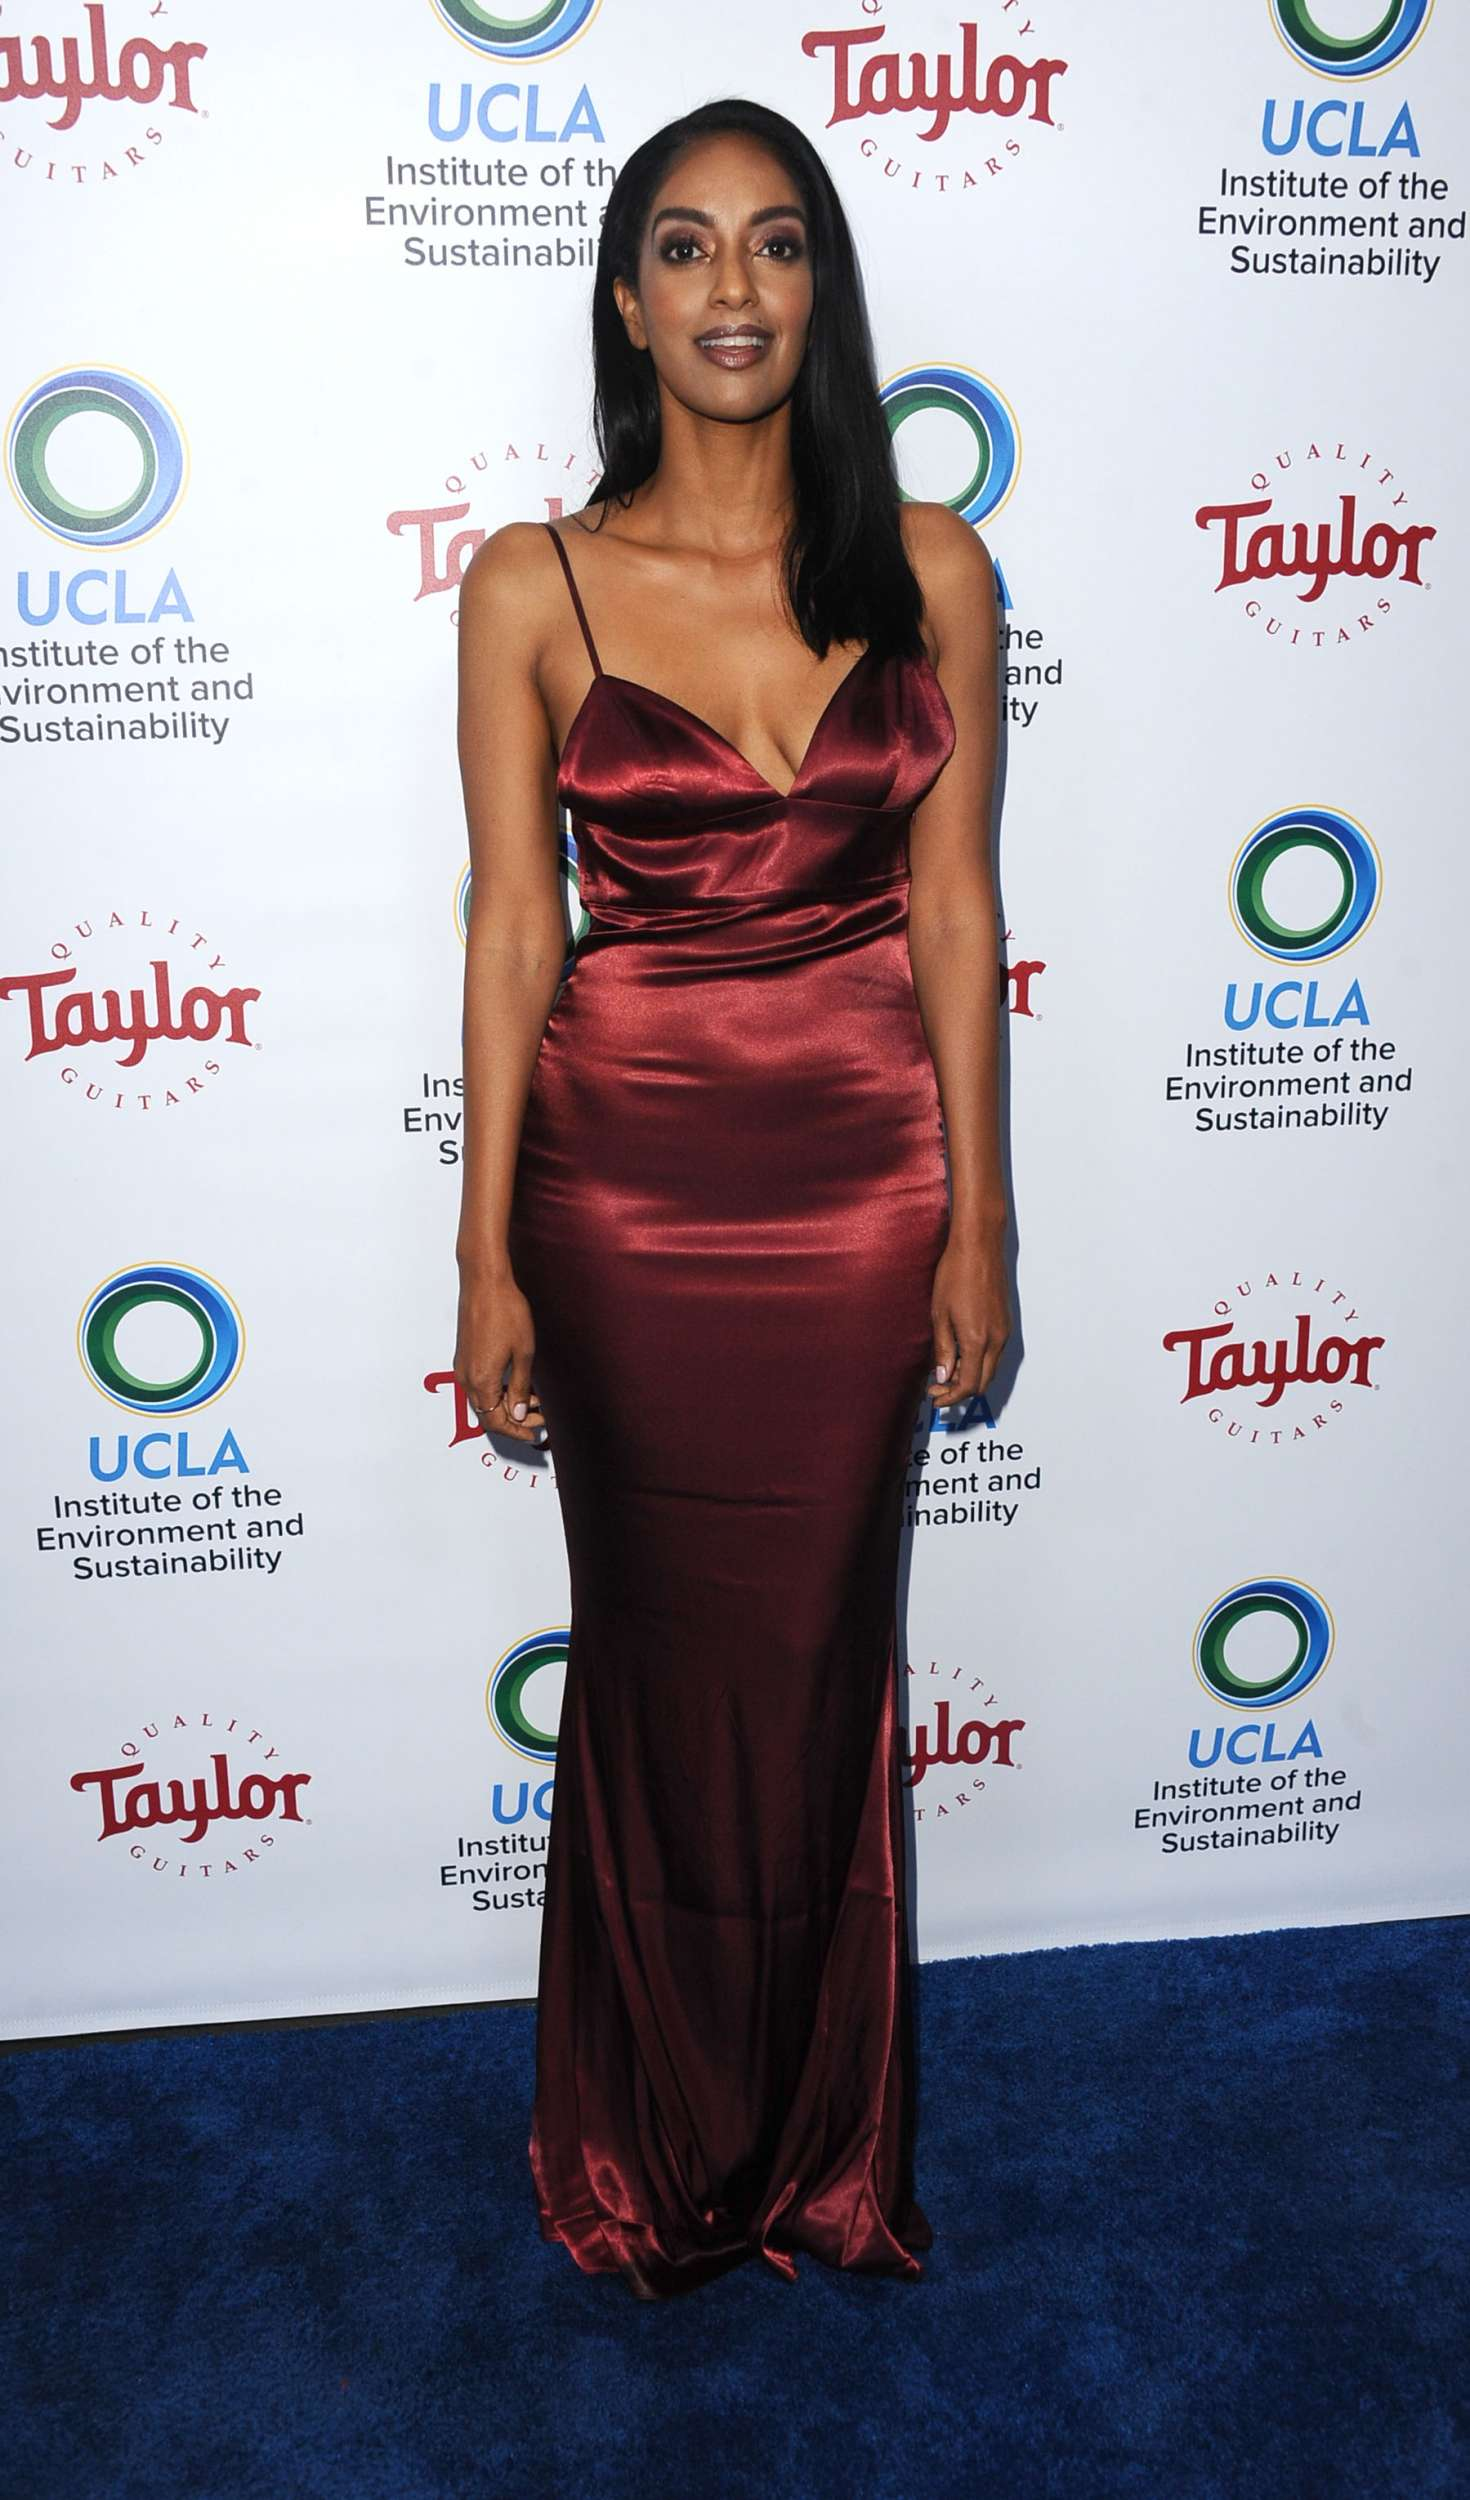 Azie Tesfai 2018 : Azie Tesfai: 2018 UCLAs Institute of the Environment and Sustainability Gala -08